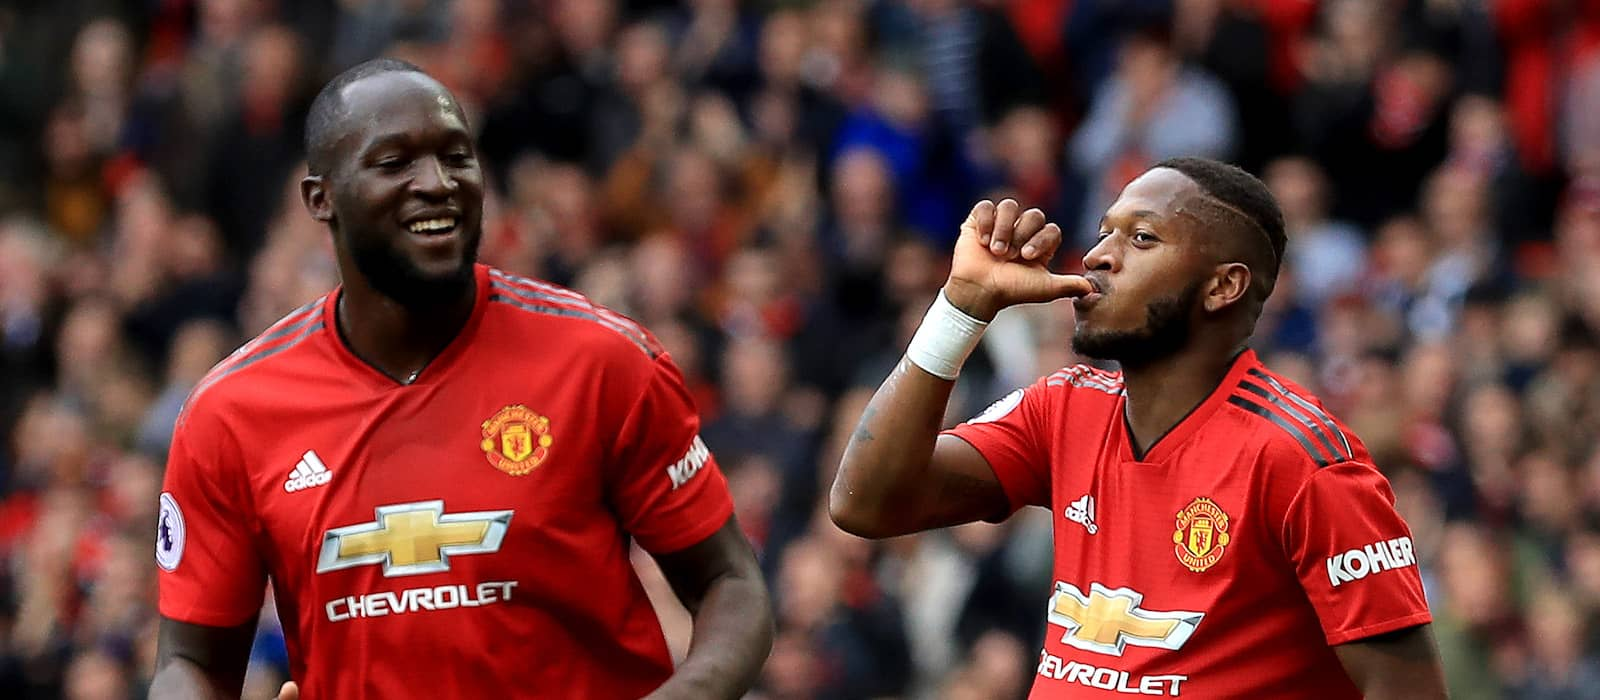 Valencia vs Manchester United: Potential XI with Paul Pogba